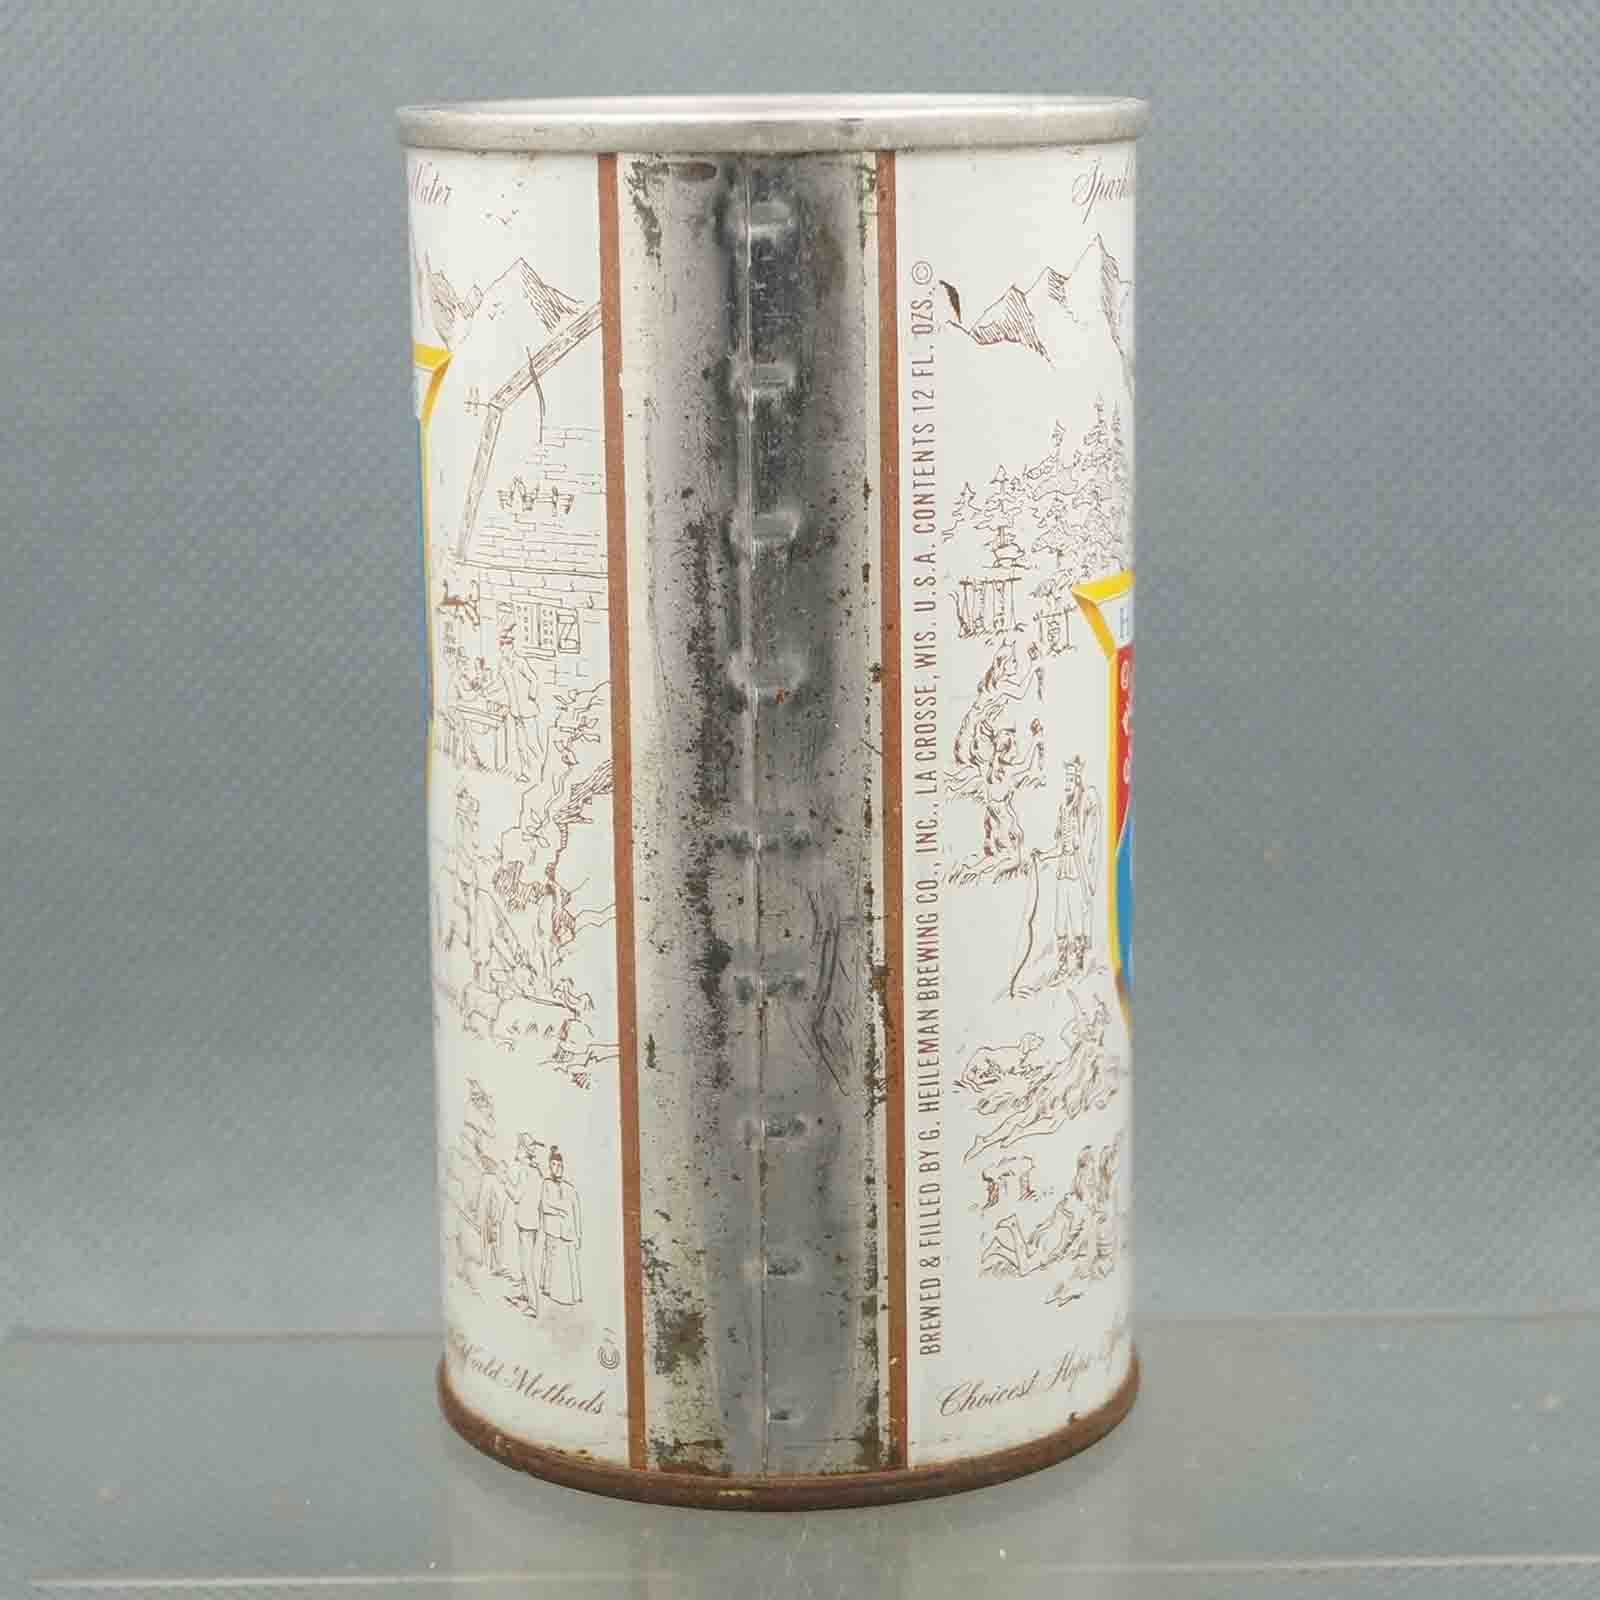 heilemans 75-22 pull tab beer can 4